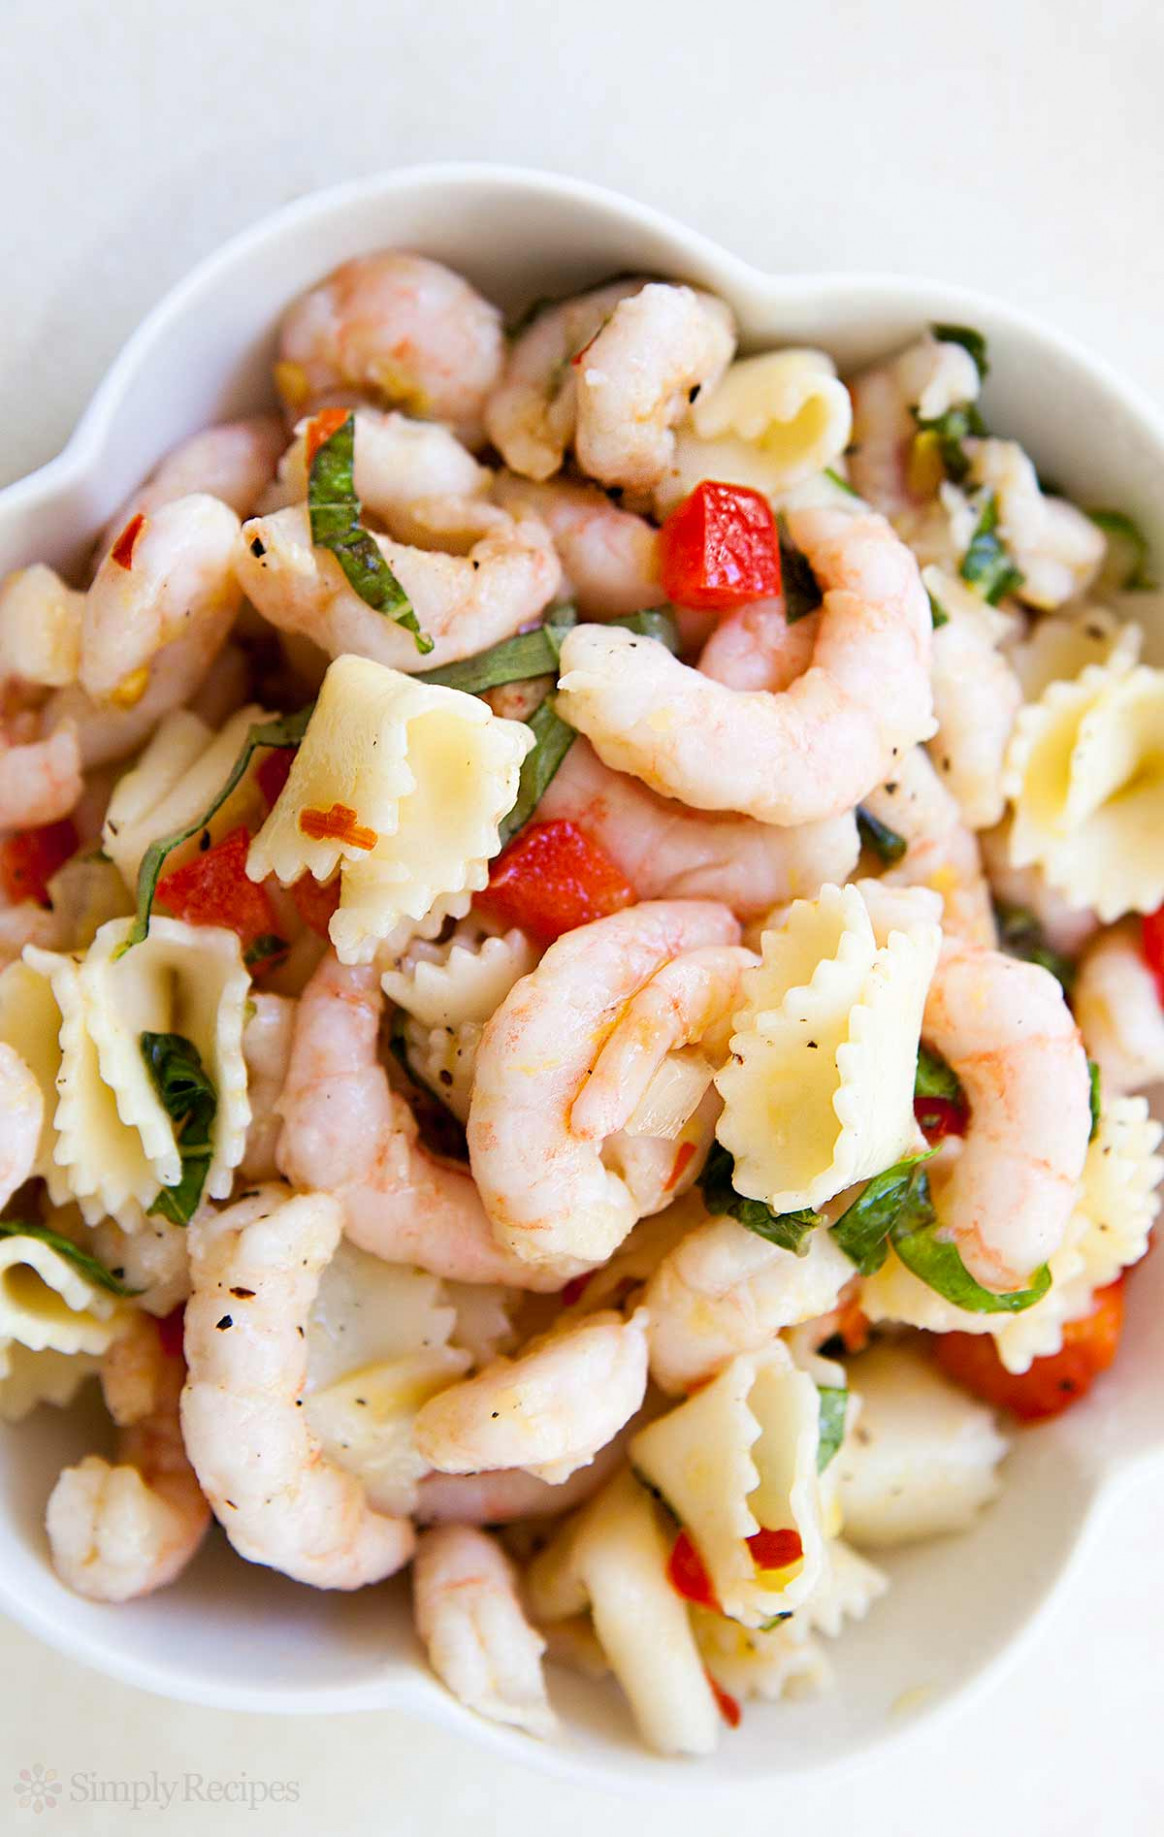 Shrimp Pasta Salad Recipe | SimplyRecipes